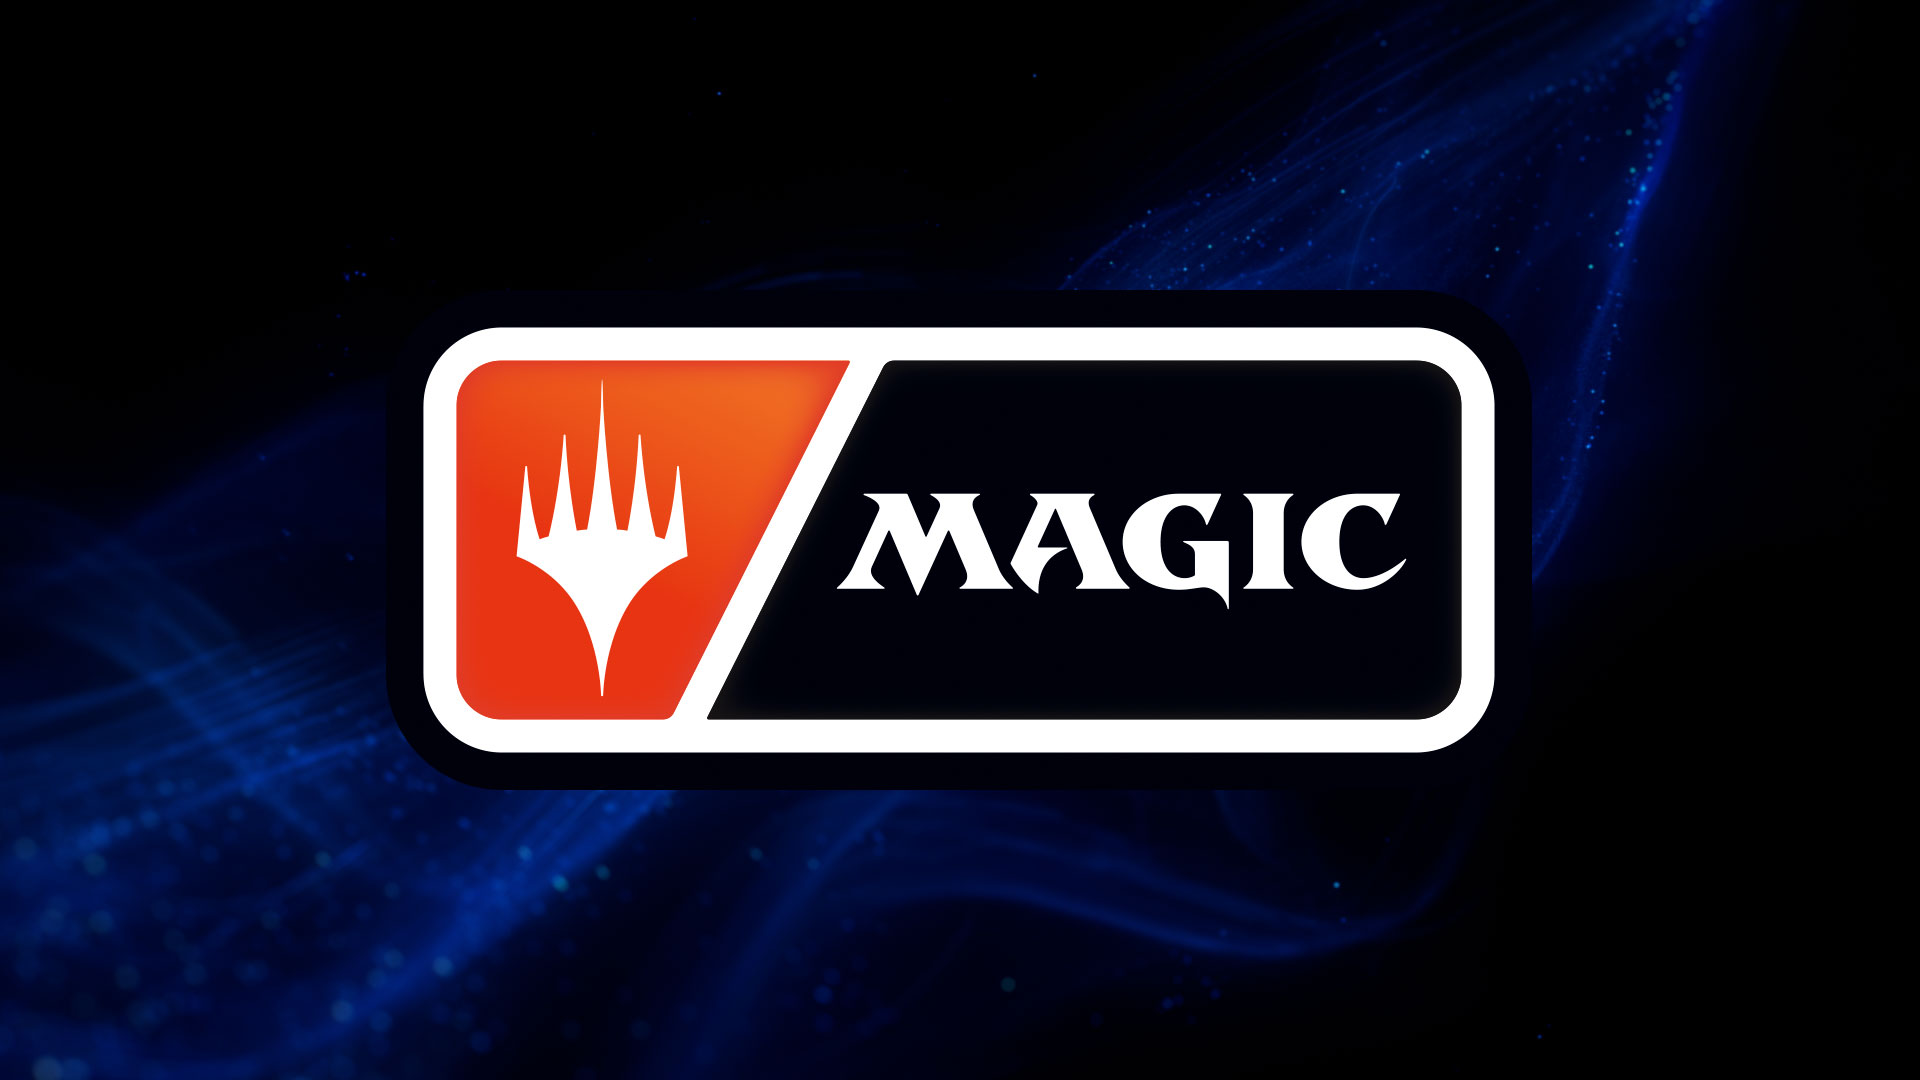 WotC Announces Dates For Upcoming Magic Esports Events